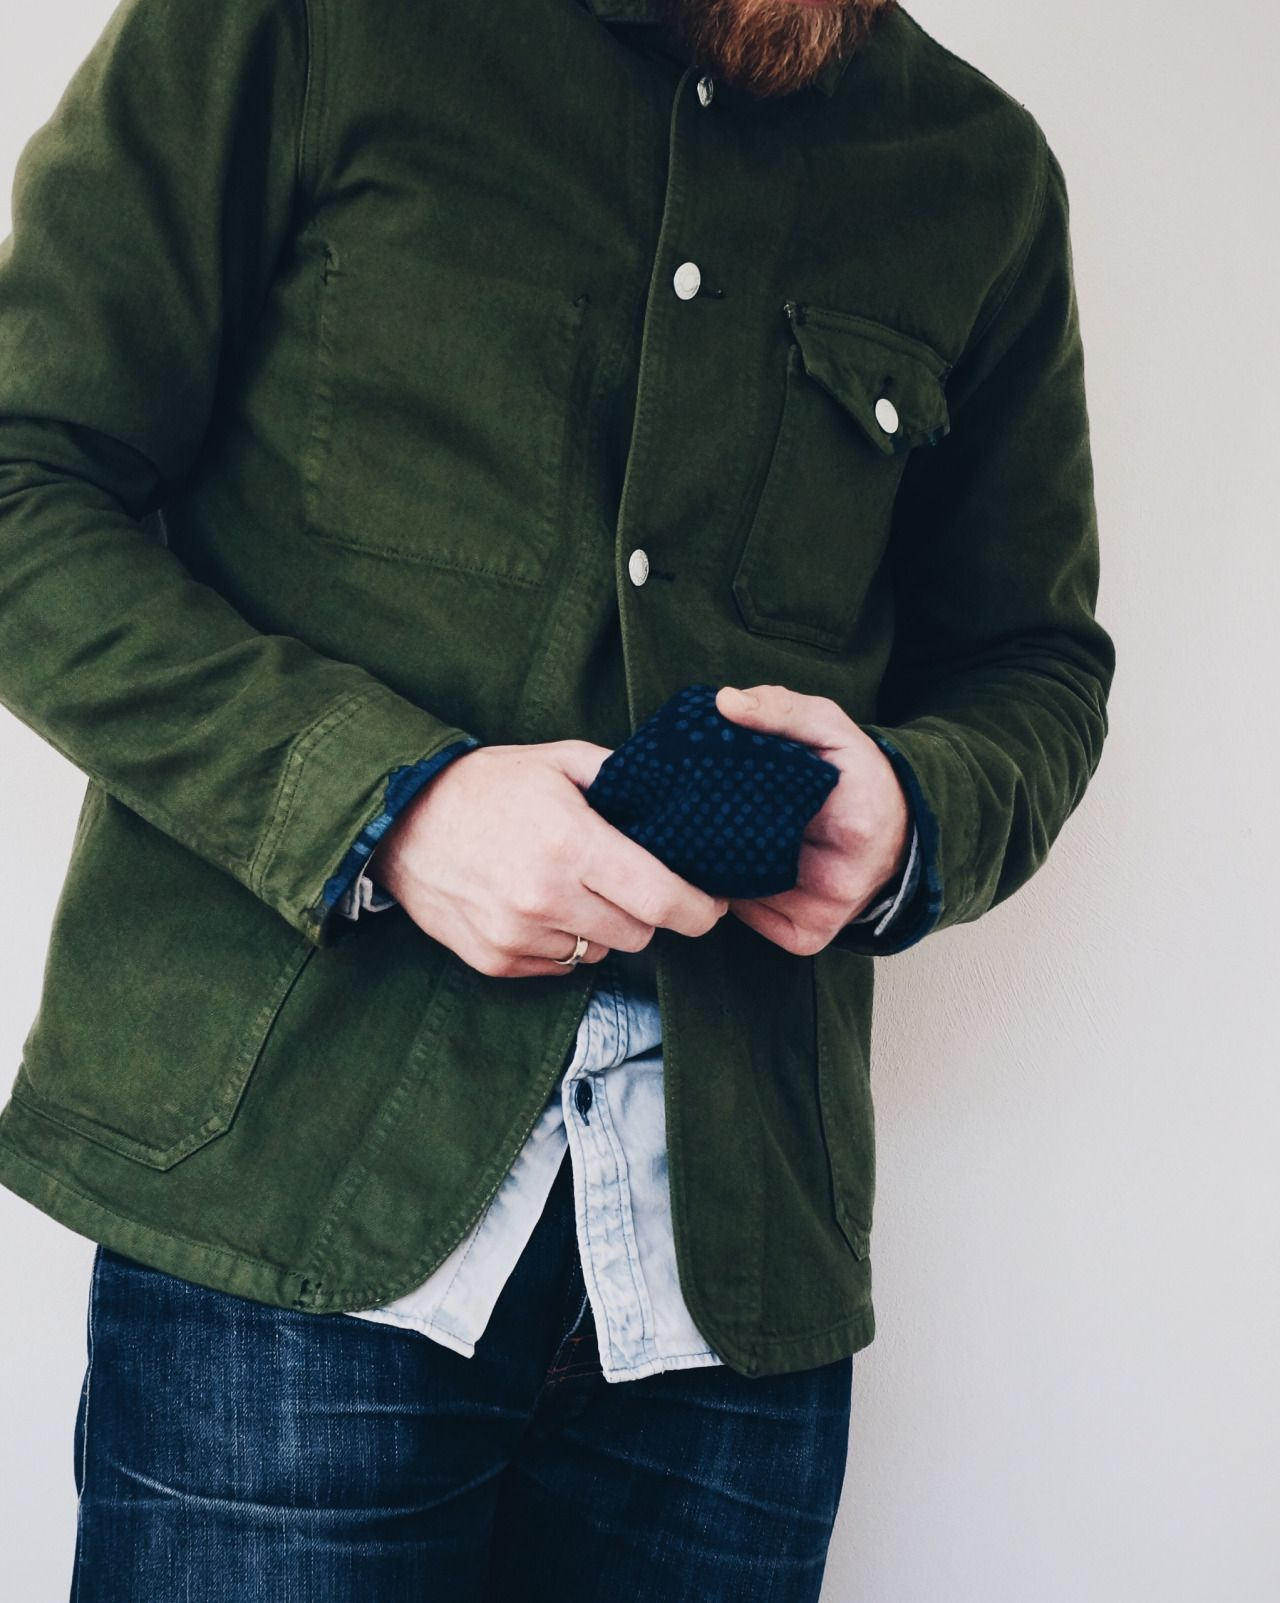 denimxcoffee  This jacket is by the Dutch brand Kings of Indigo (also known  as K.O.I.). They are putting out such great garments. This is a army green  bazer ... c75400ac11346